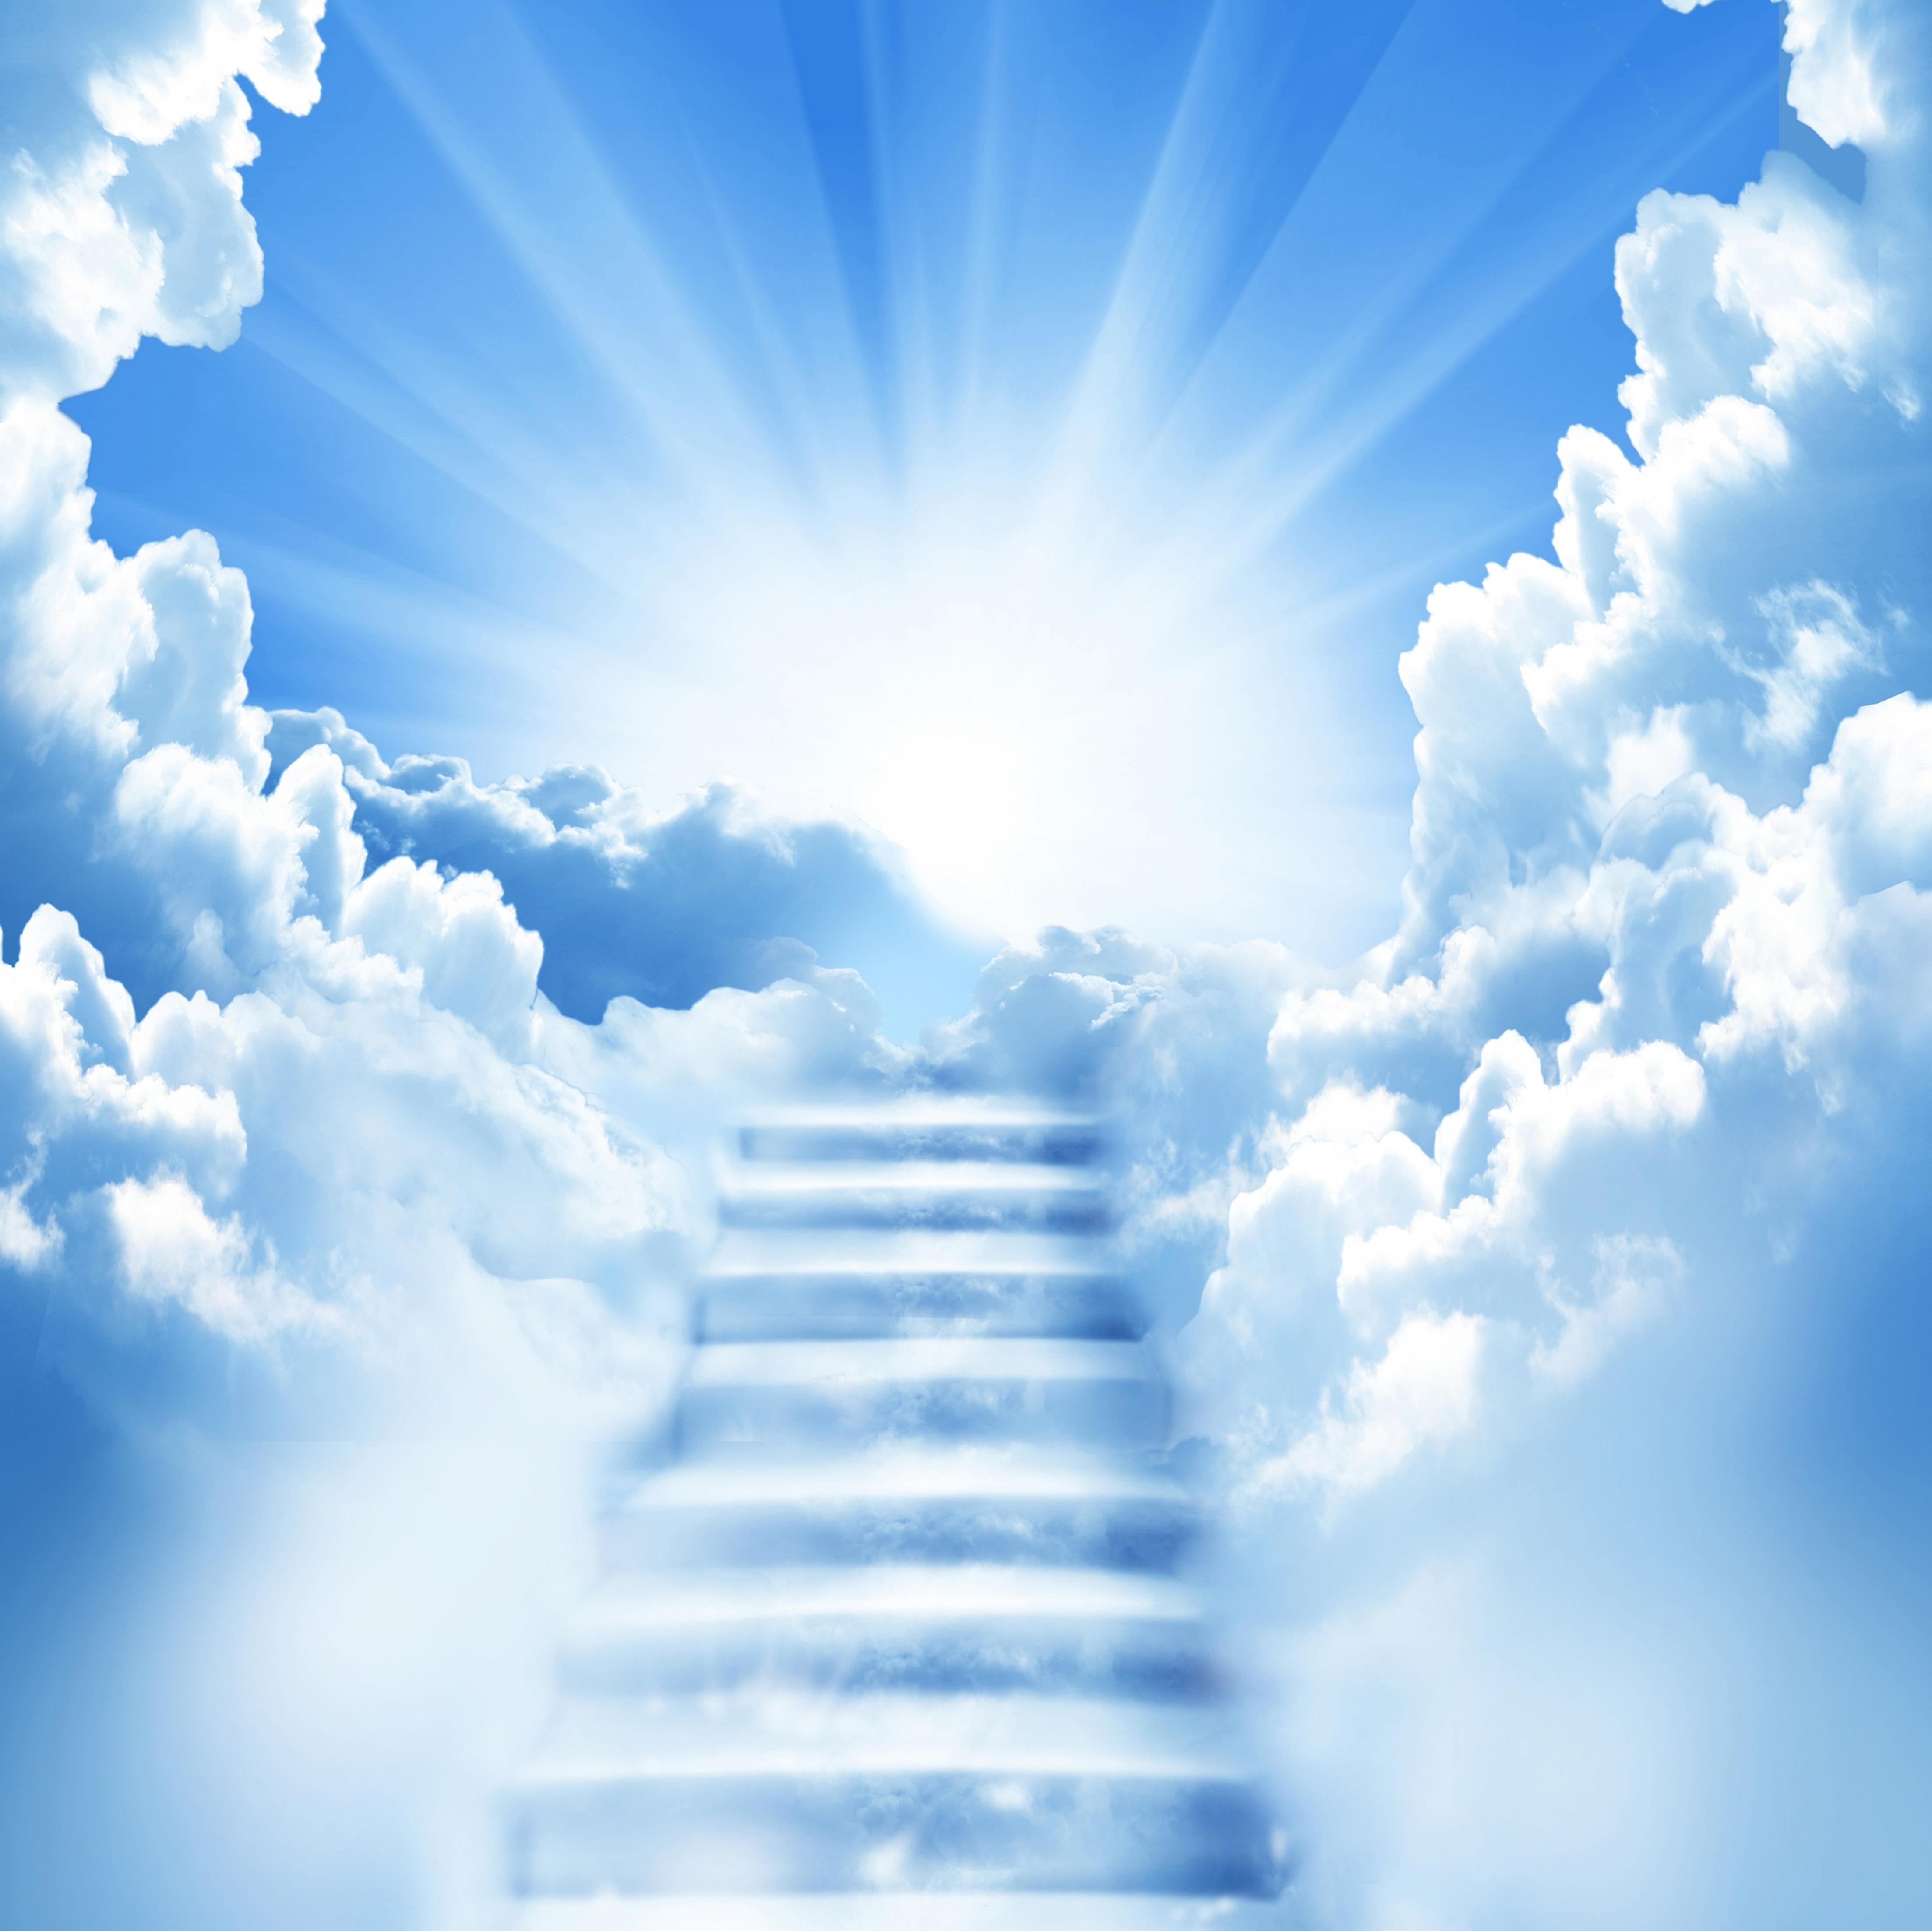 stairway to heaven background - photo #6